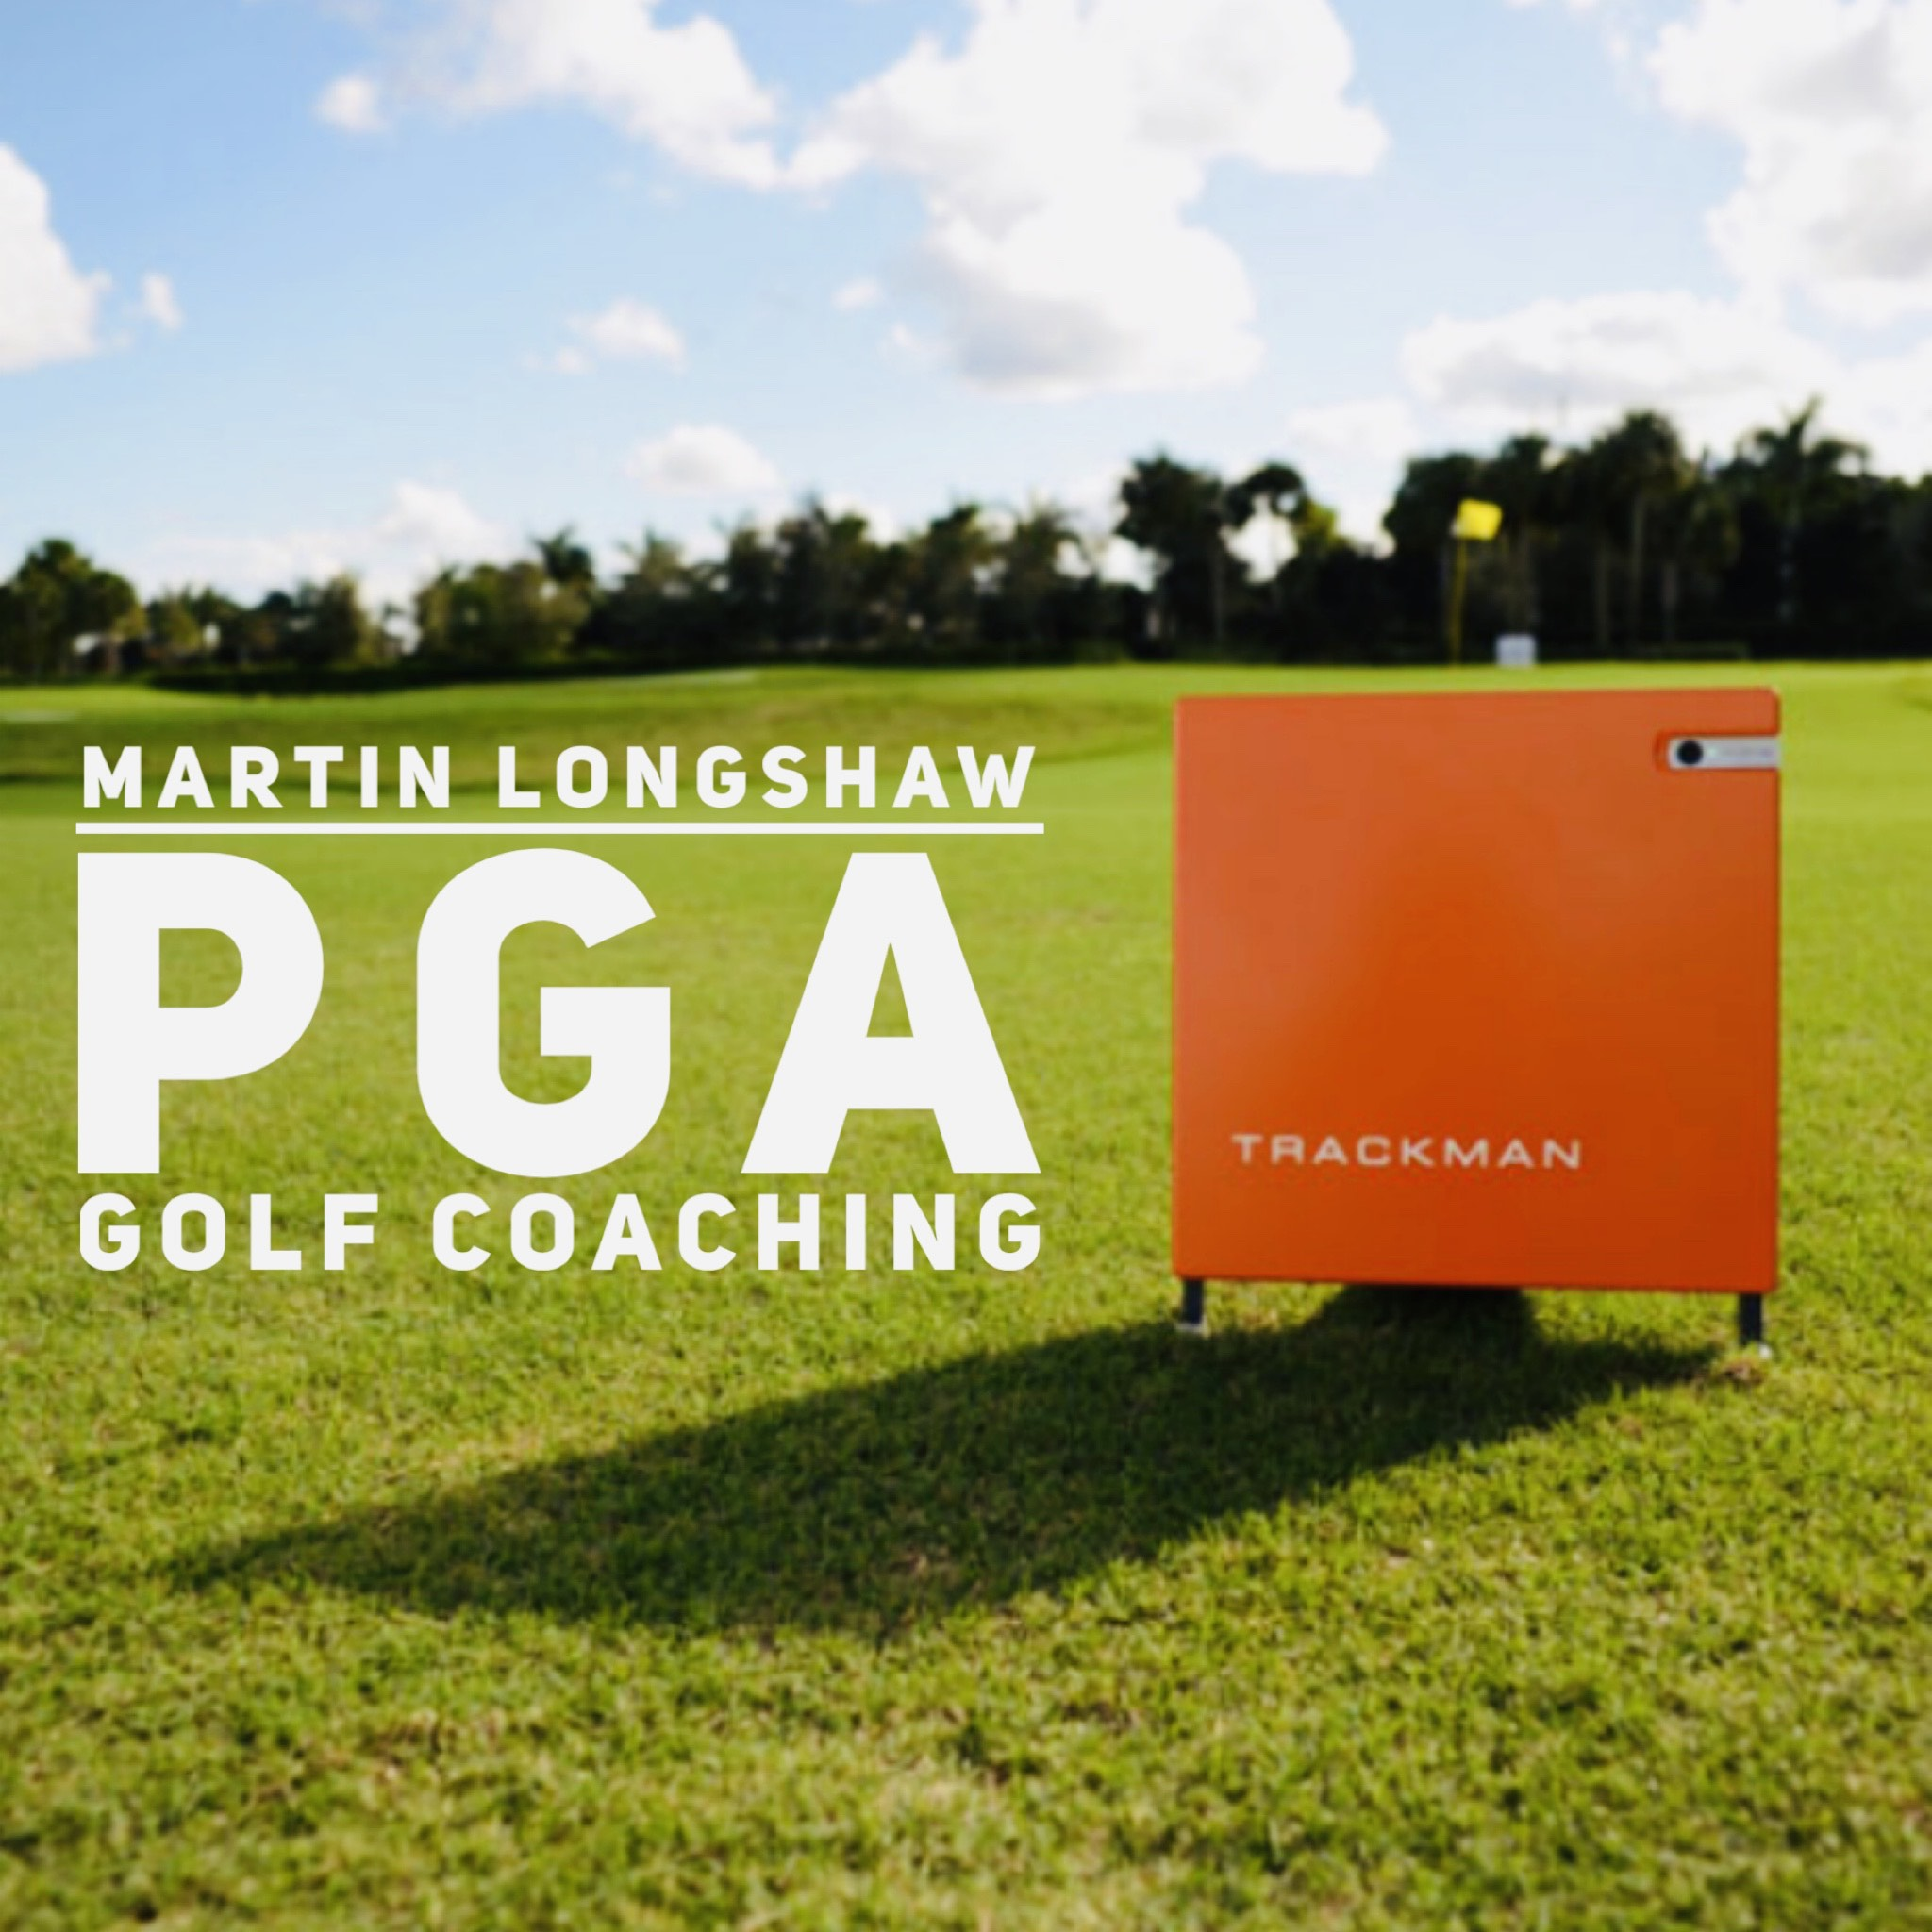 Trackman 4 and Hudl Lesson Reviews available in all my Coaching. Improve your Golf Game like never before